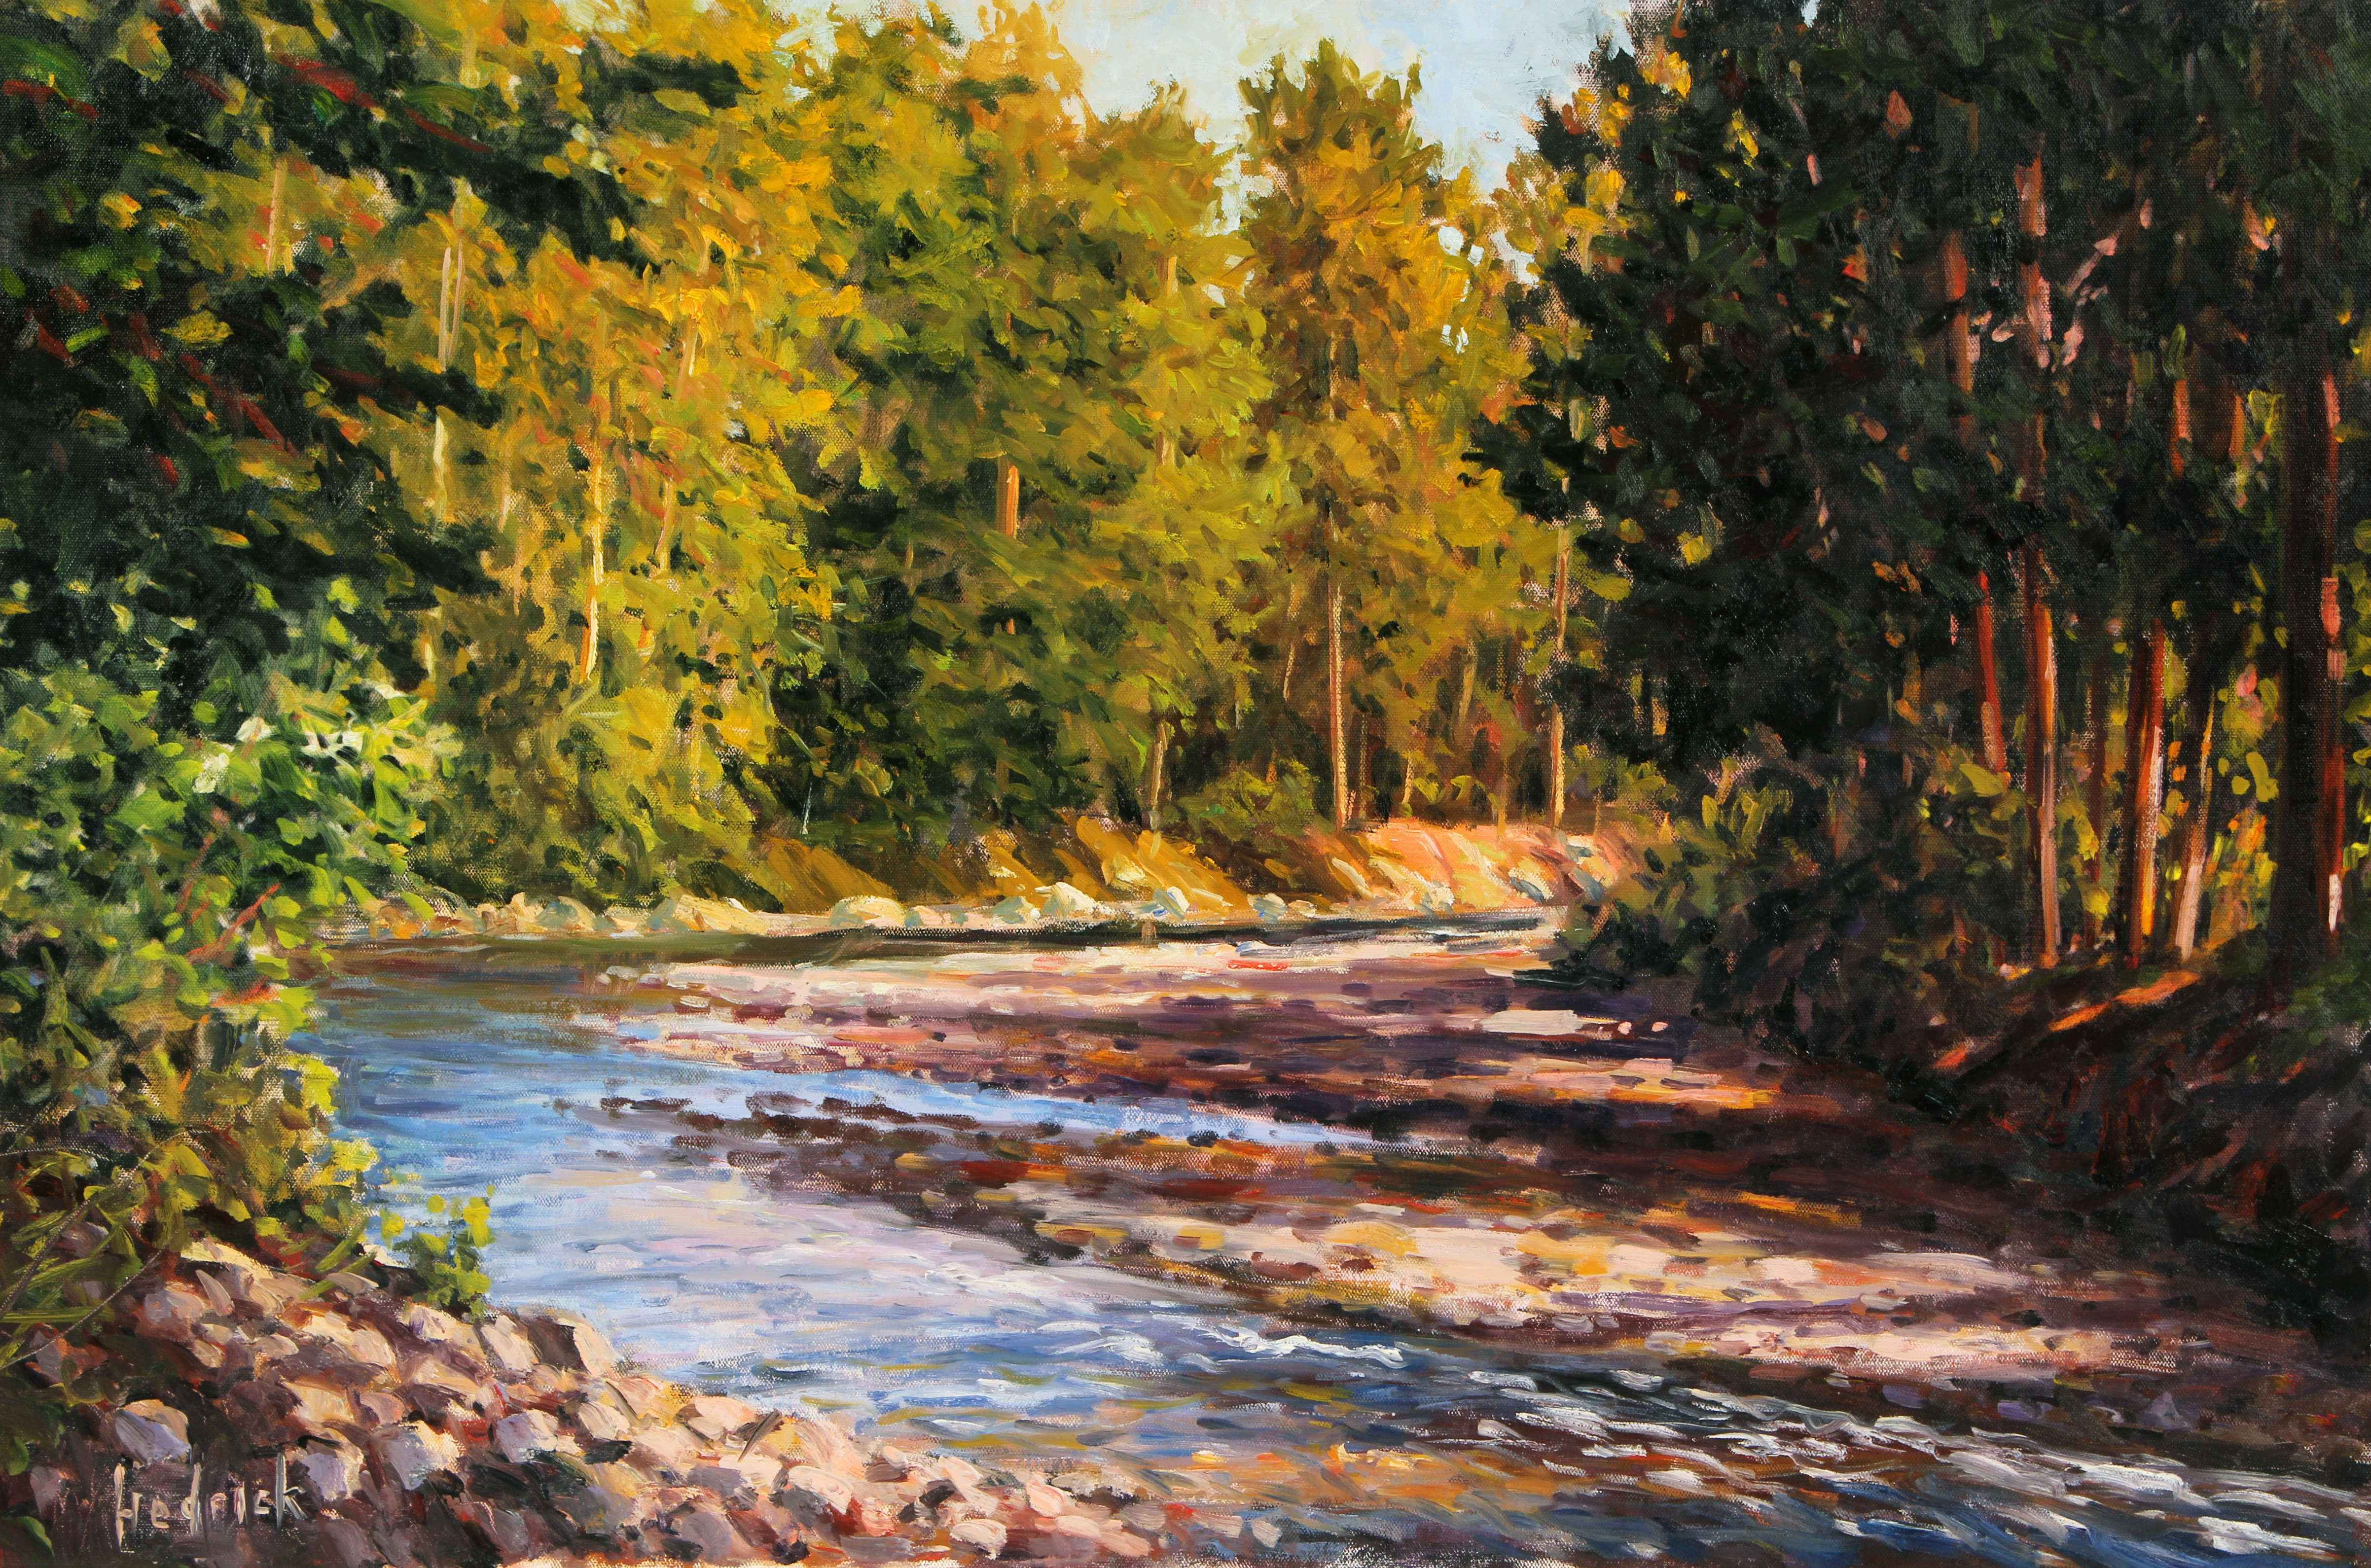 This is River Bend by  Ron Hedrick  art collection of Gainsborough Galleries Inc. represented by Gainsborough Galleries Inc. - Masterpiece Online